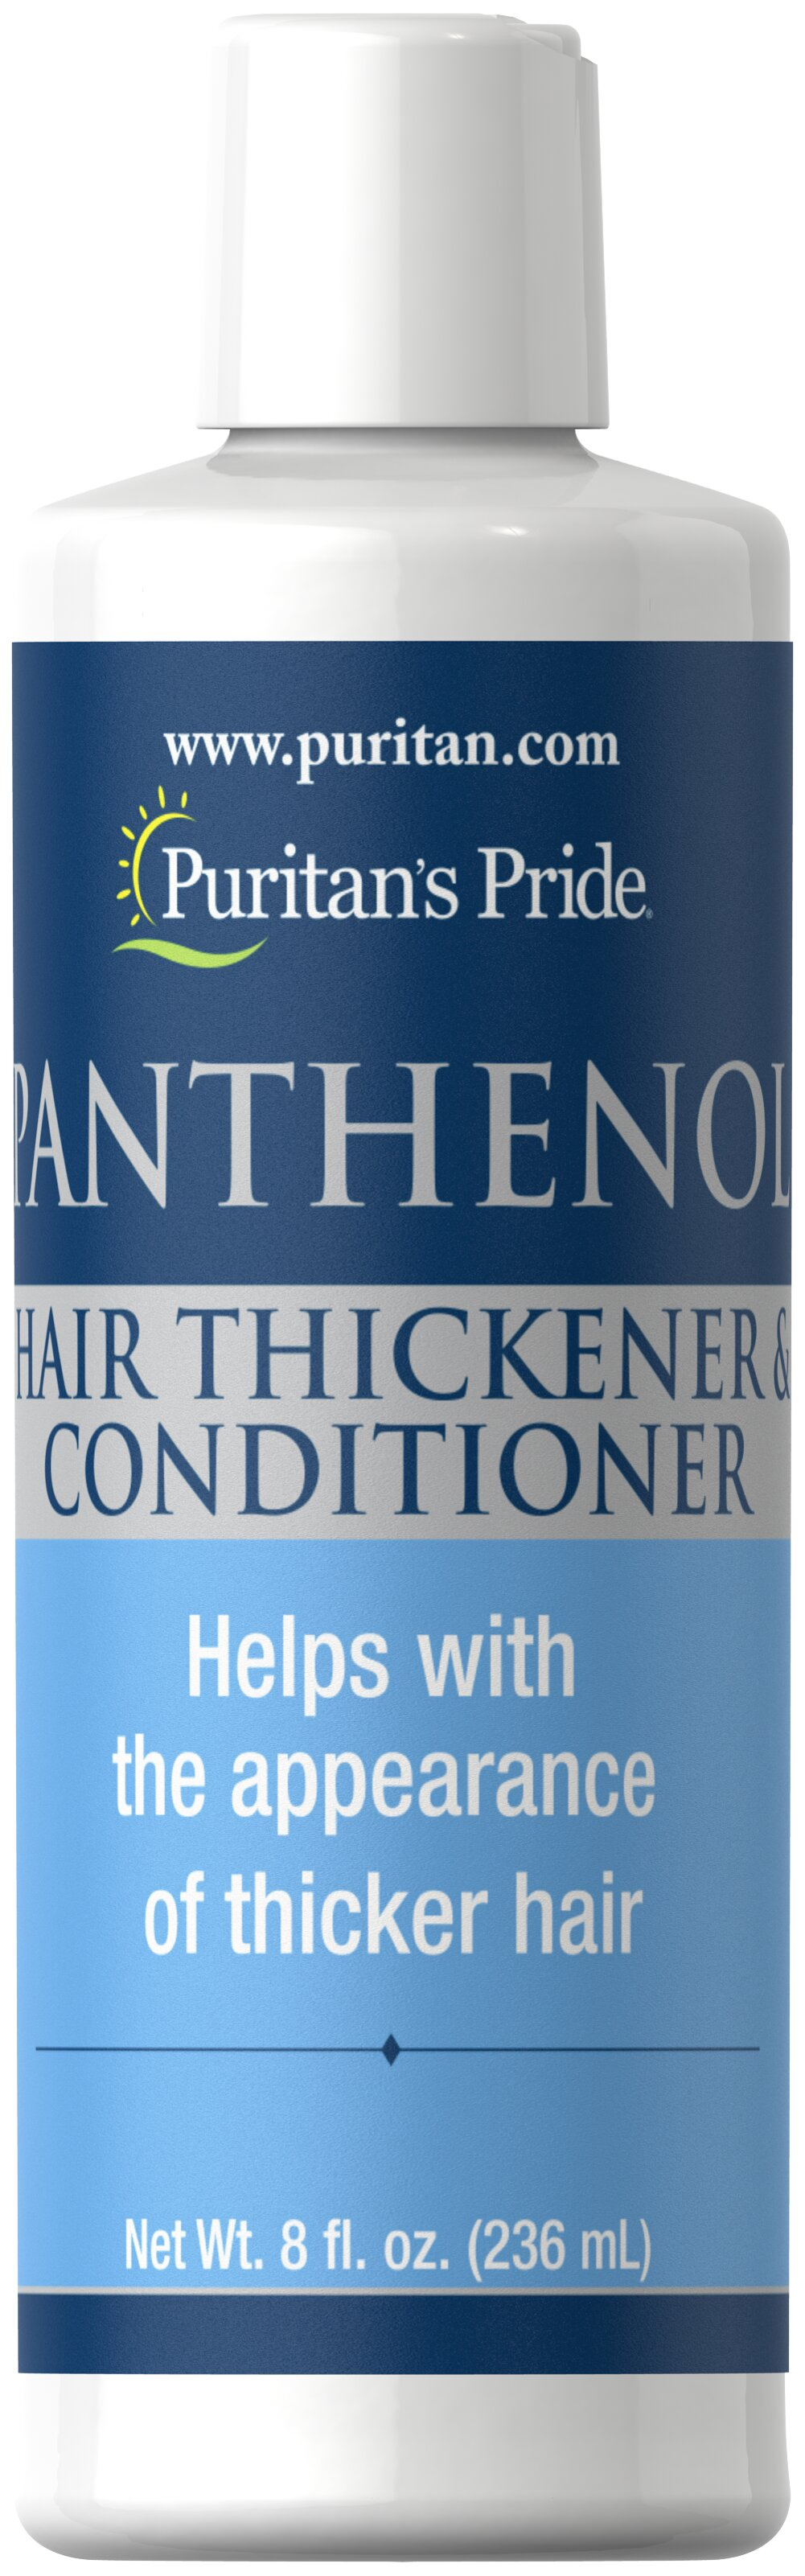 Panthenol Hair Thickener & Conditioner <p>Add New Body to Lifeless Hair</p><p>Pamper your hair with Puritan's Pride Hair Thickener & Conditioner. After continuous use, your hair will have more body, feel stronger, and look healthier. Panthenol revitalizes your hair as it penetrates each hair shaft, and can make a dramatic difference in the look and feel of your hair.</p> 8 fl oz Conditioner  $9.34